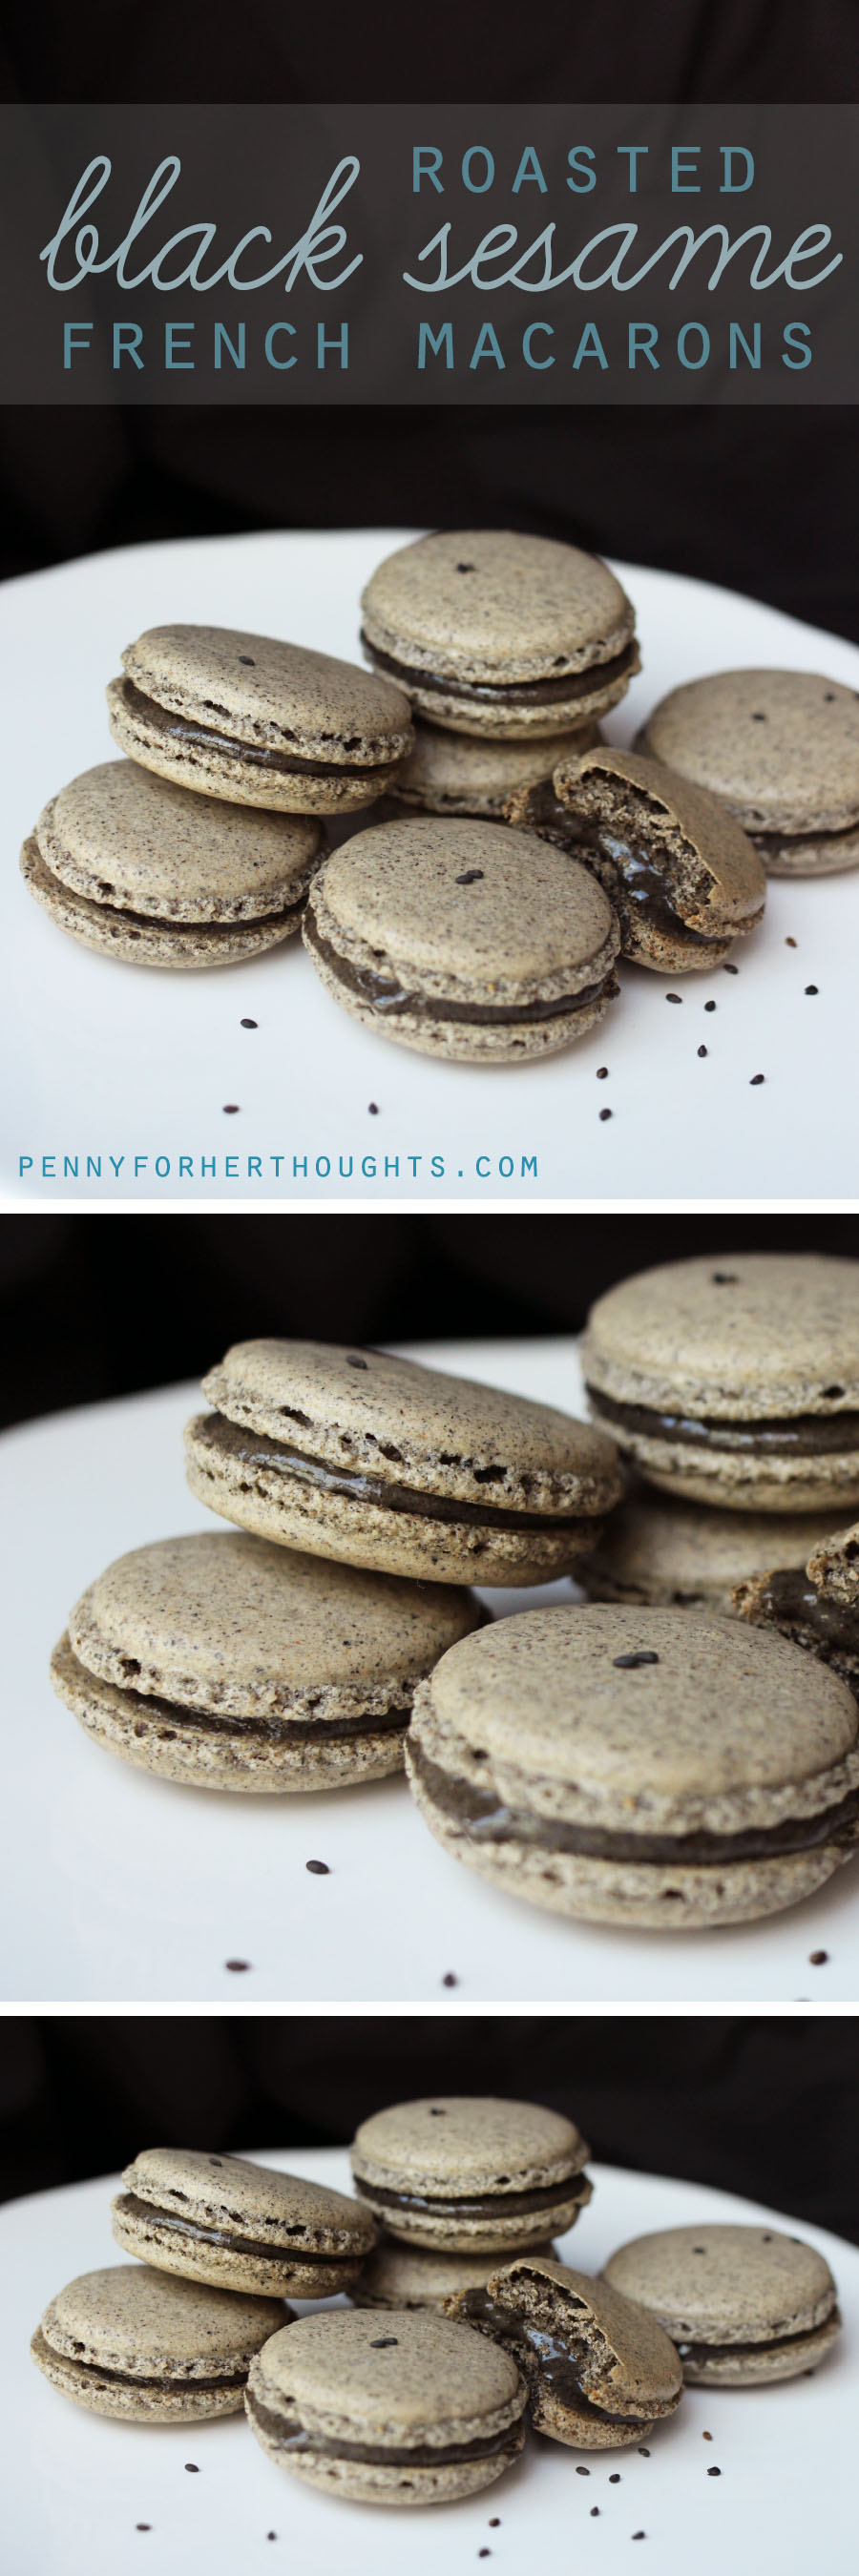 Roasted Black Sesame Macarons